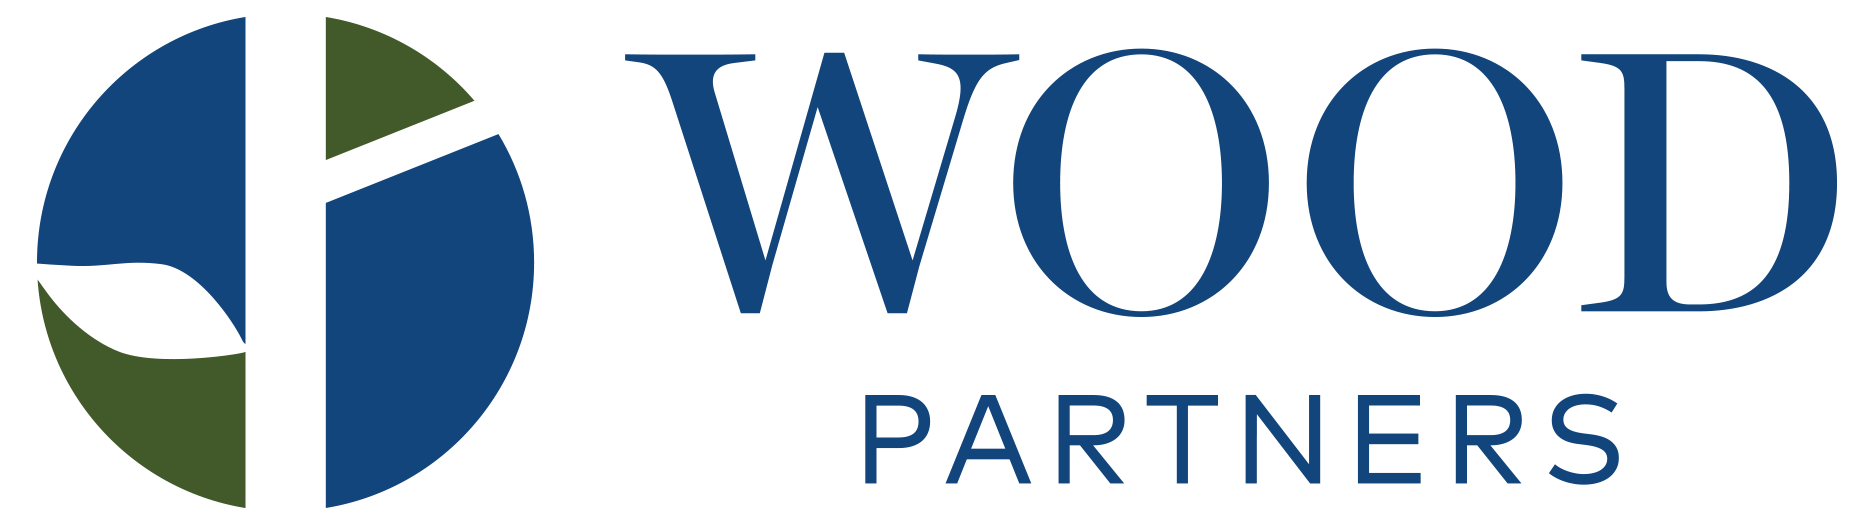 WoodCorp-Wood Partners logo